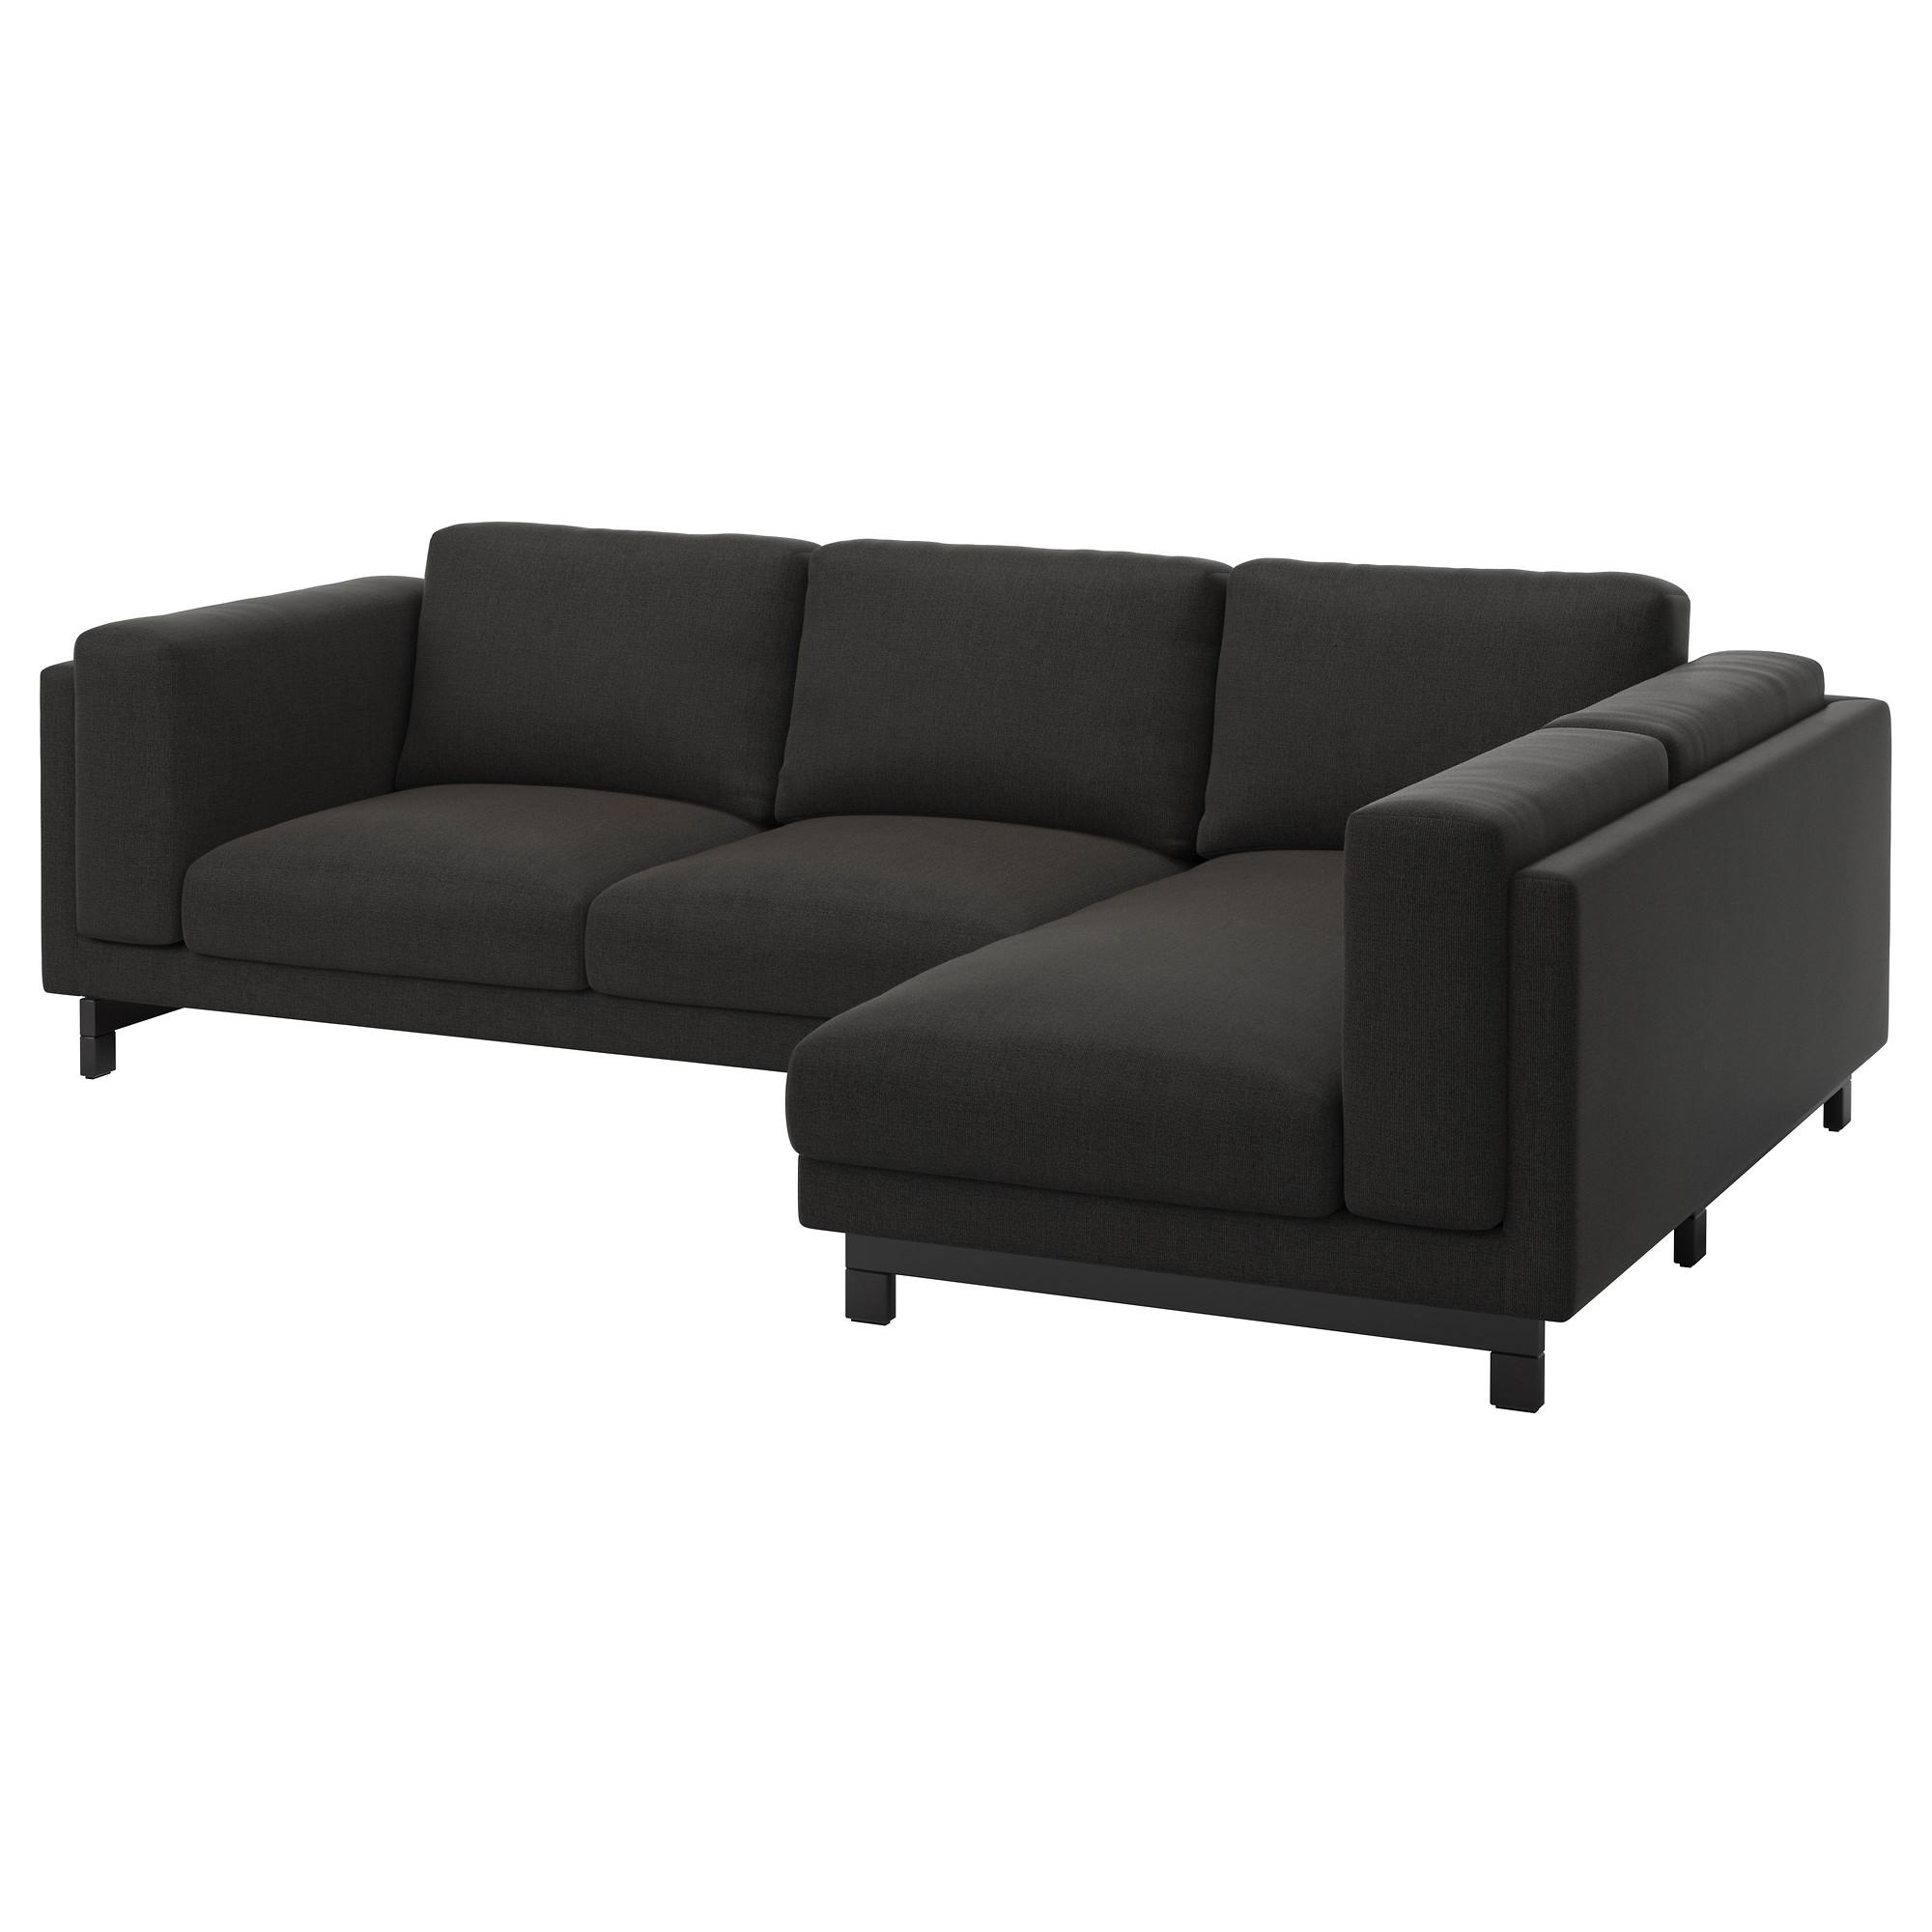 2 Seater Fabric Sofa | Ikea Within Small Sofas Ikea (View 16 of 20)